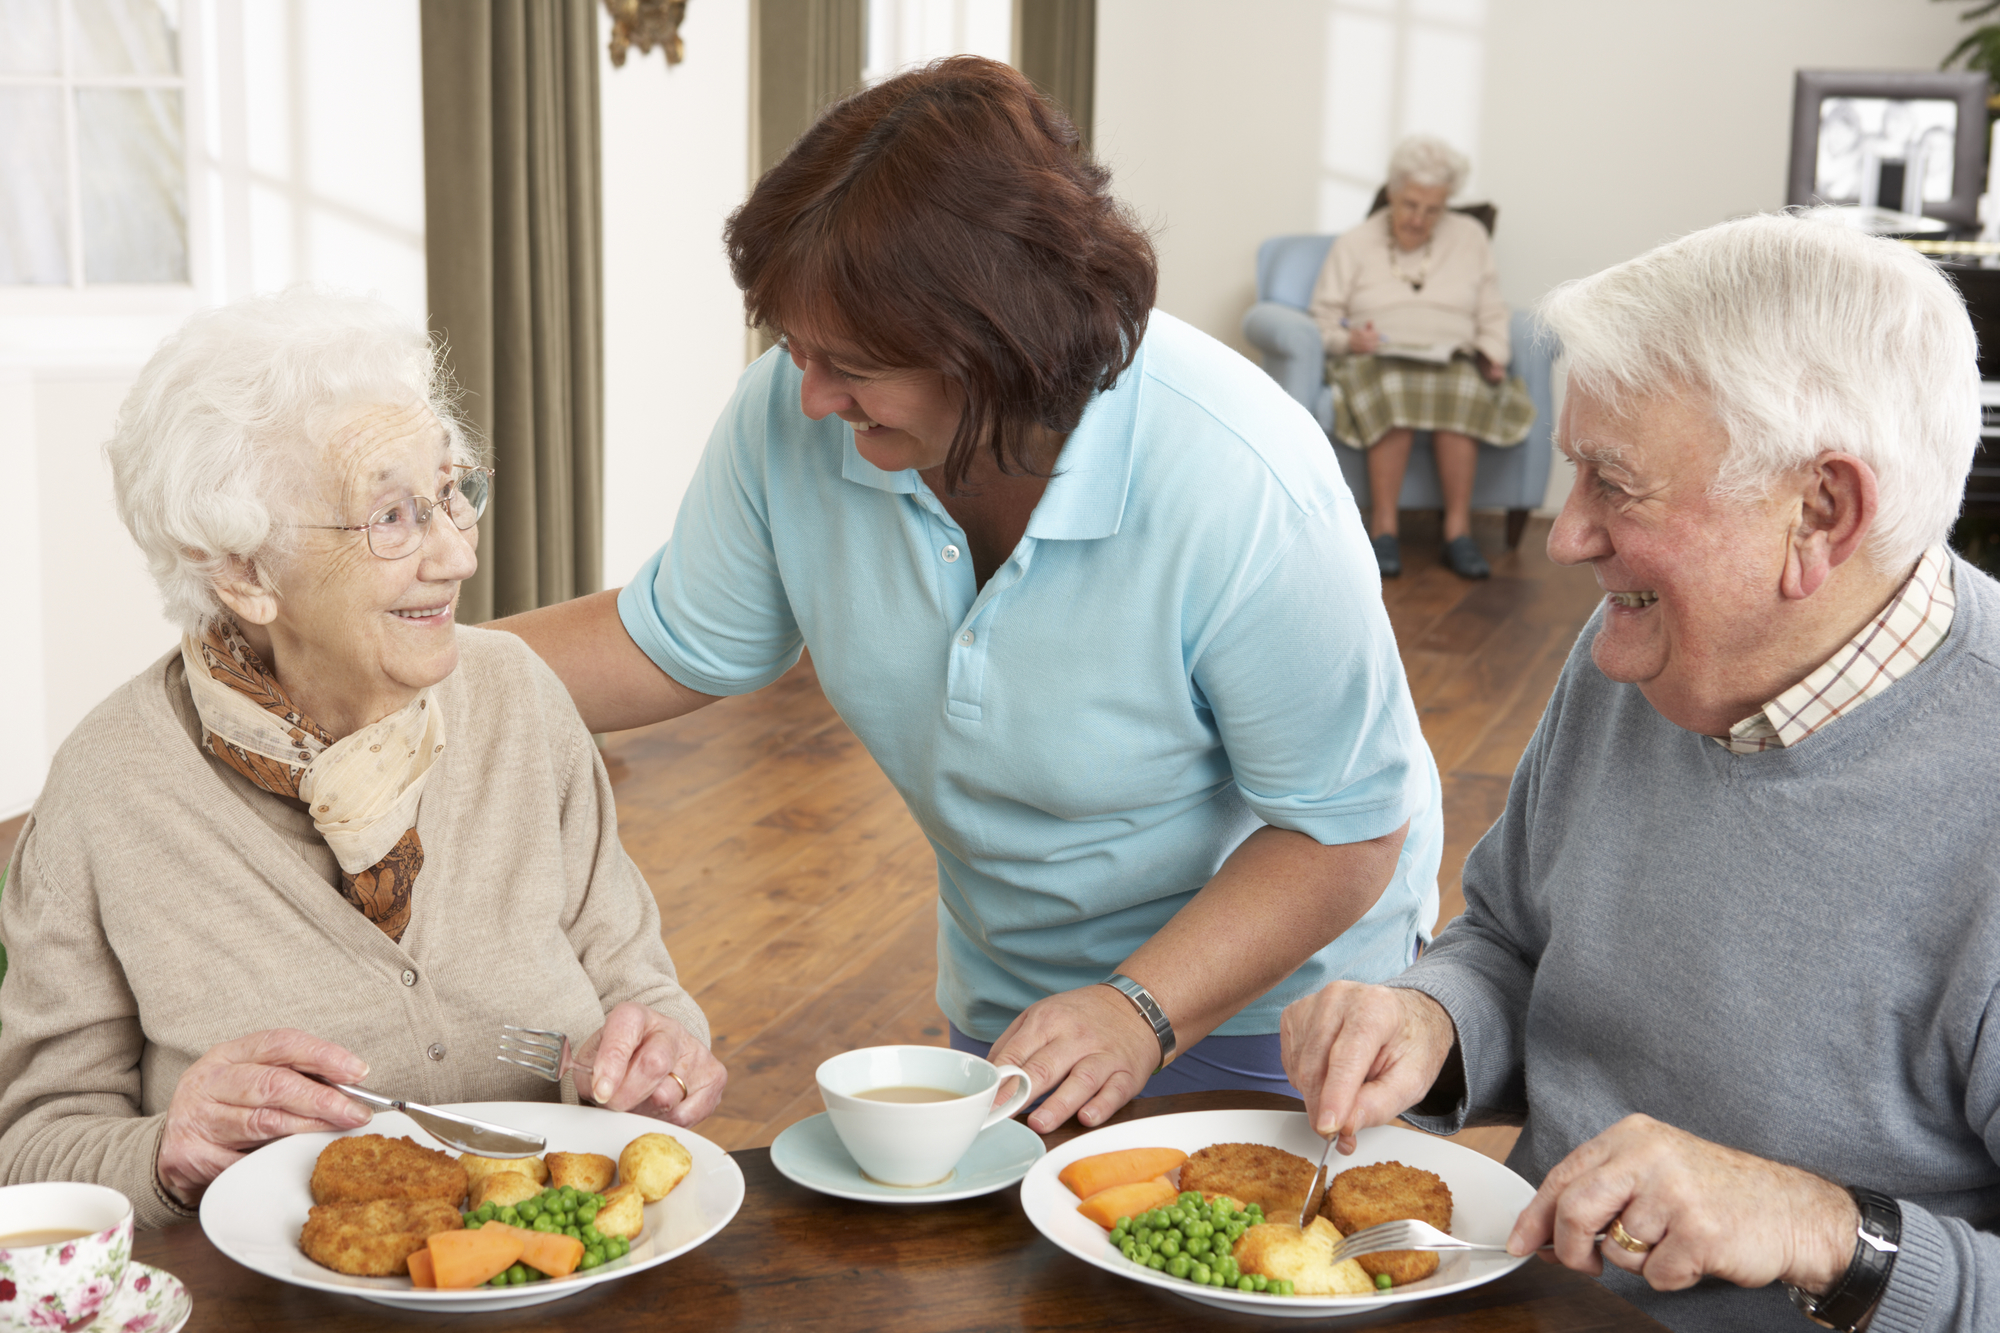 assisted living referral company